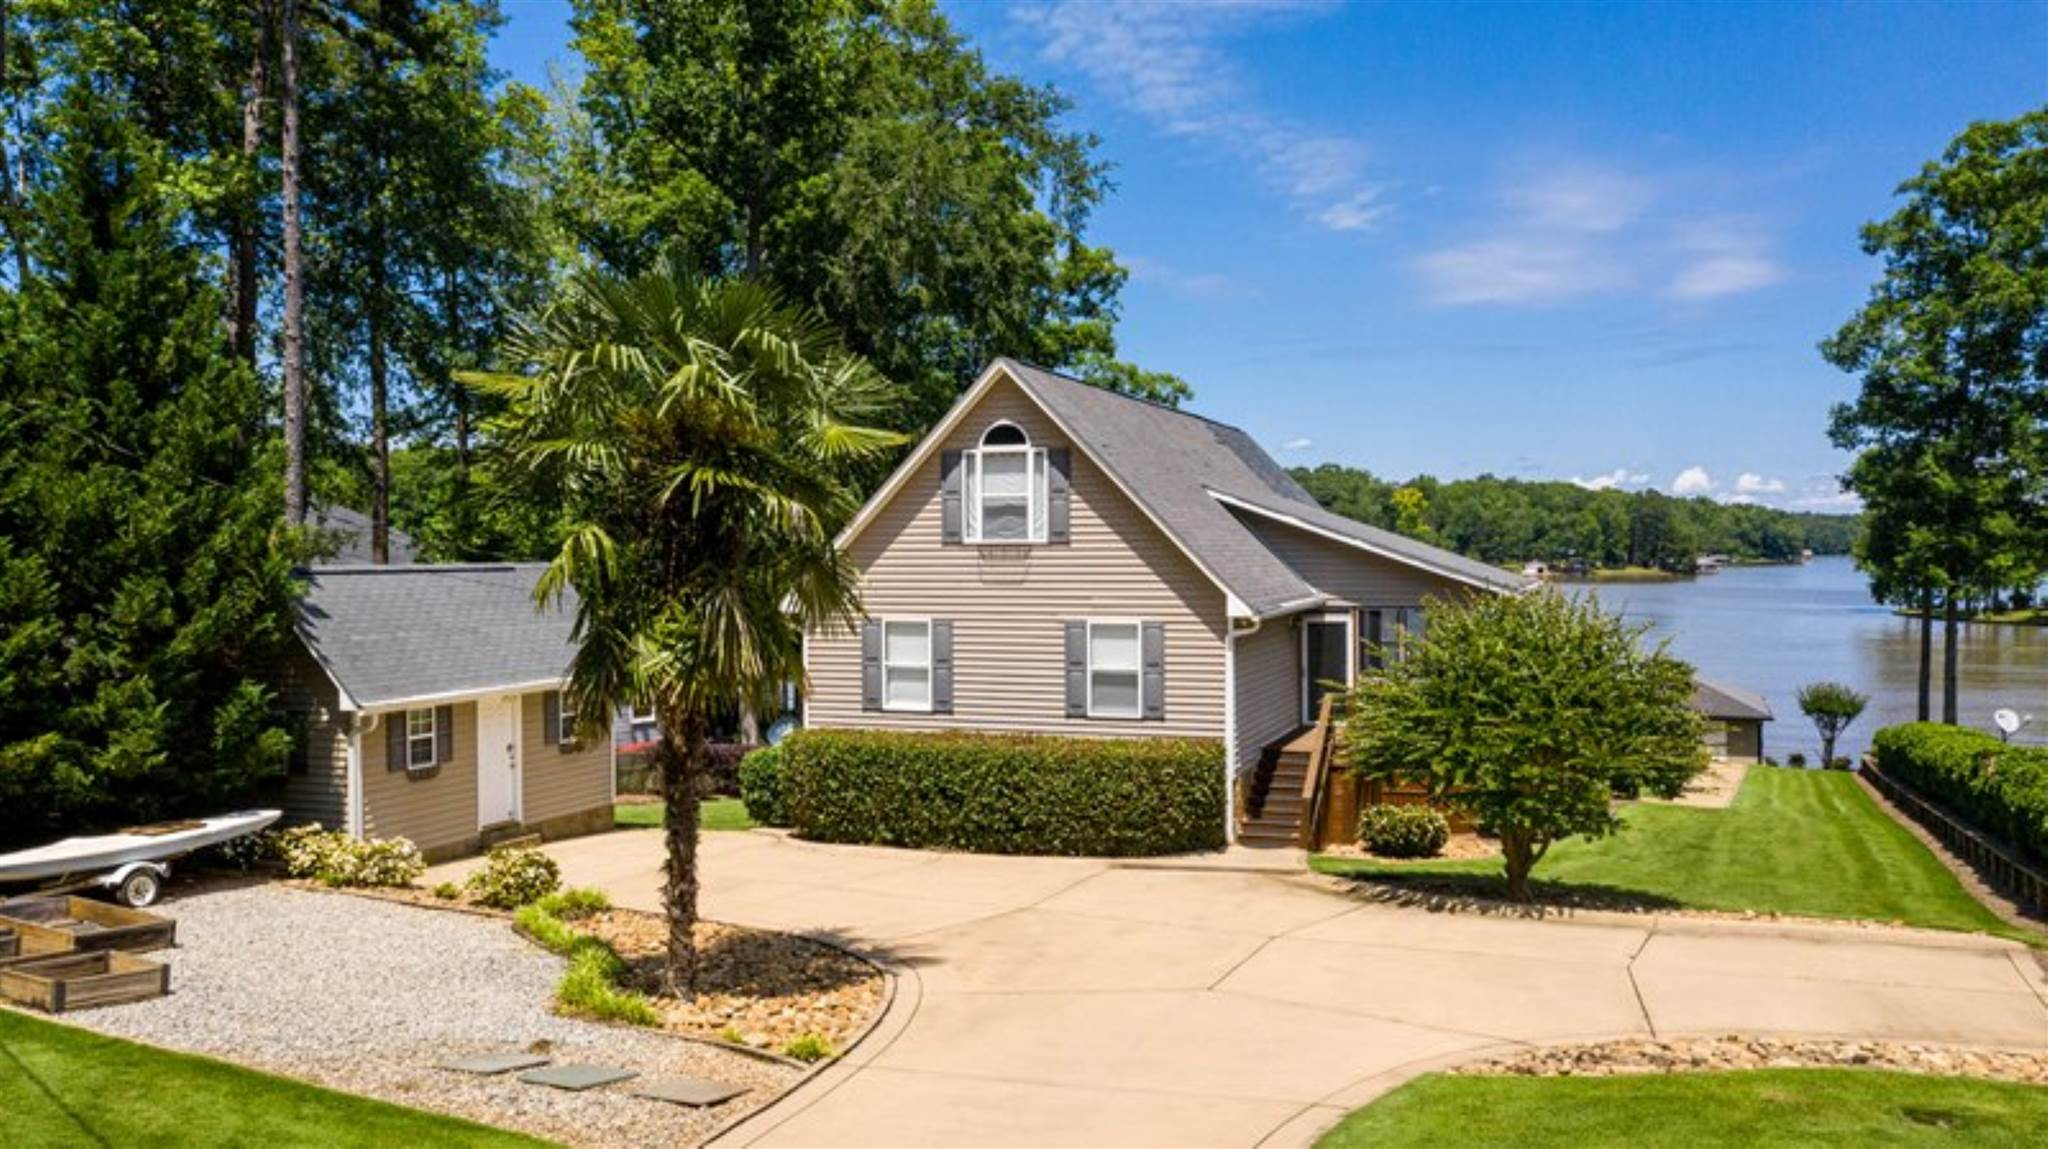 207 A THOMAS DRIVE, Lake Sinclair in Putnam County, GA 31024 Home for Sale